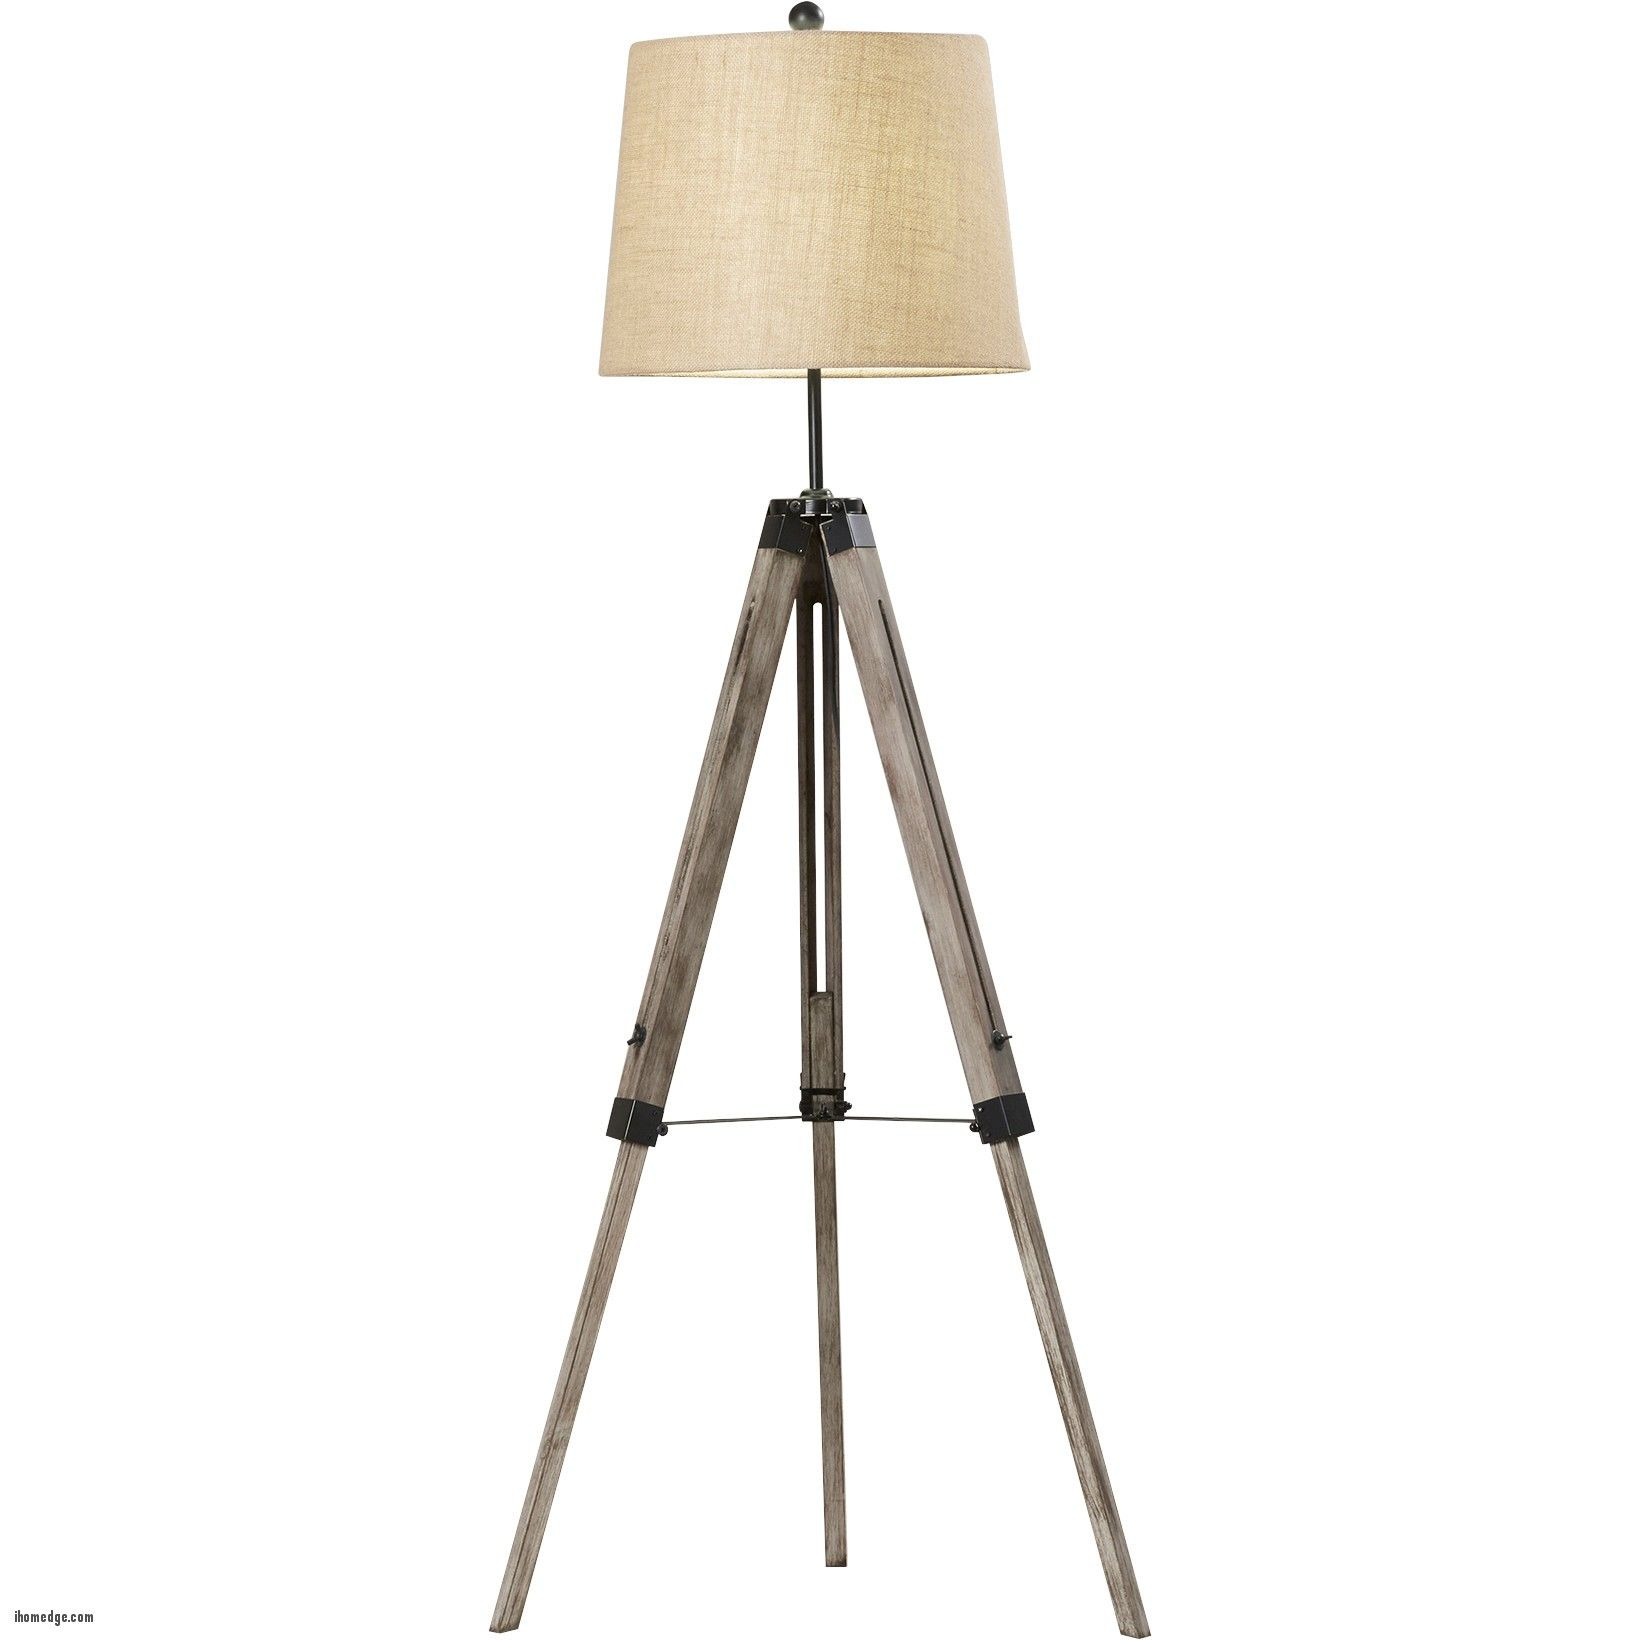 Good Unique Studio Floor Lamp Lighting Lamps Coastal Floor Lamps